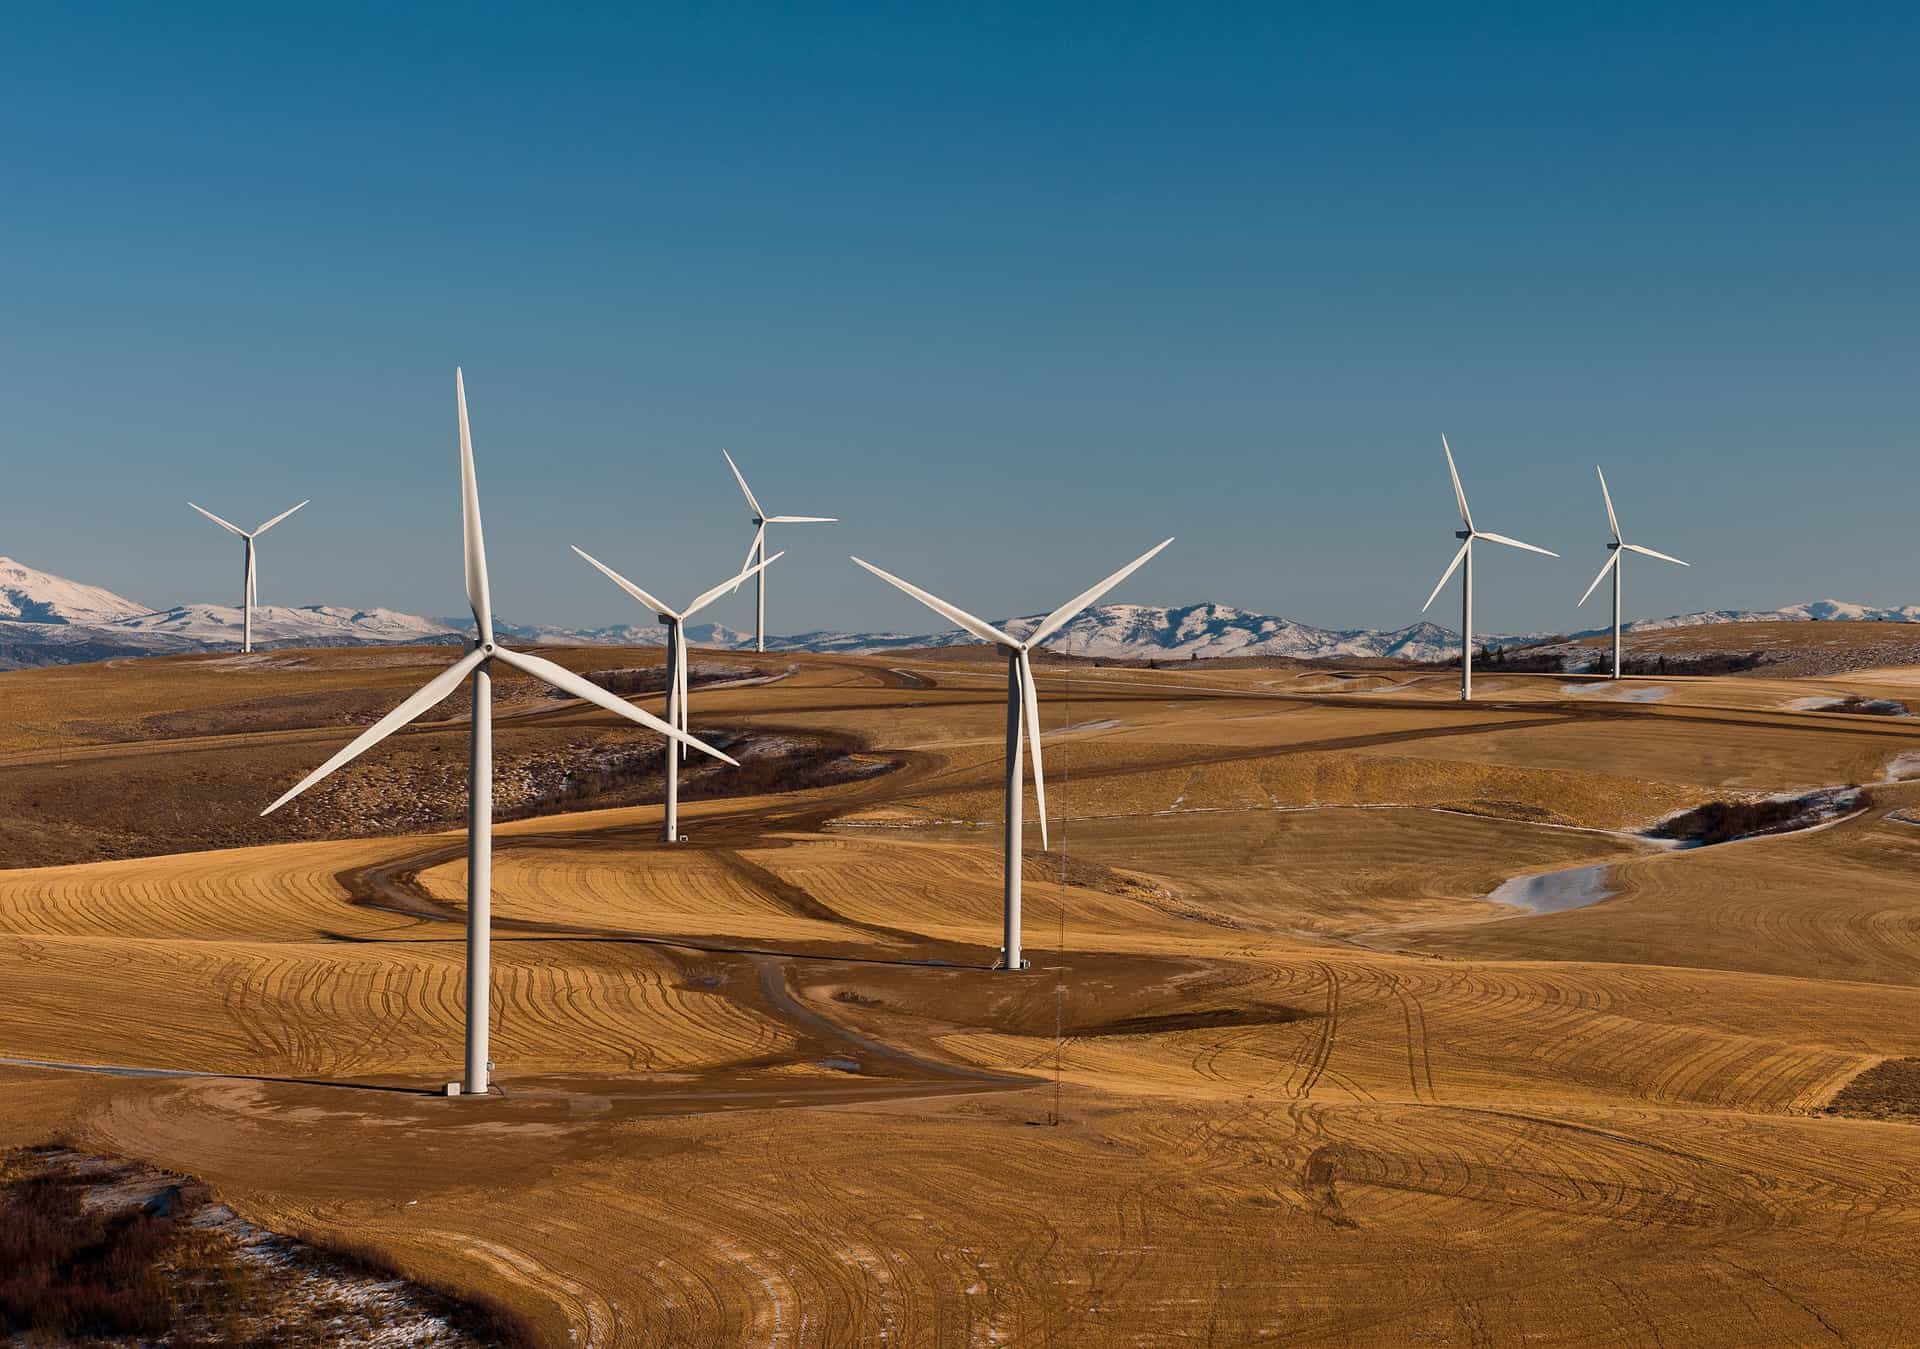 United States will build wind farm with a cost of $1 billion